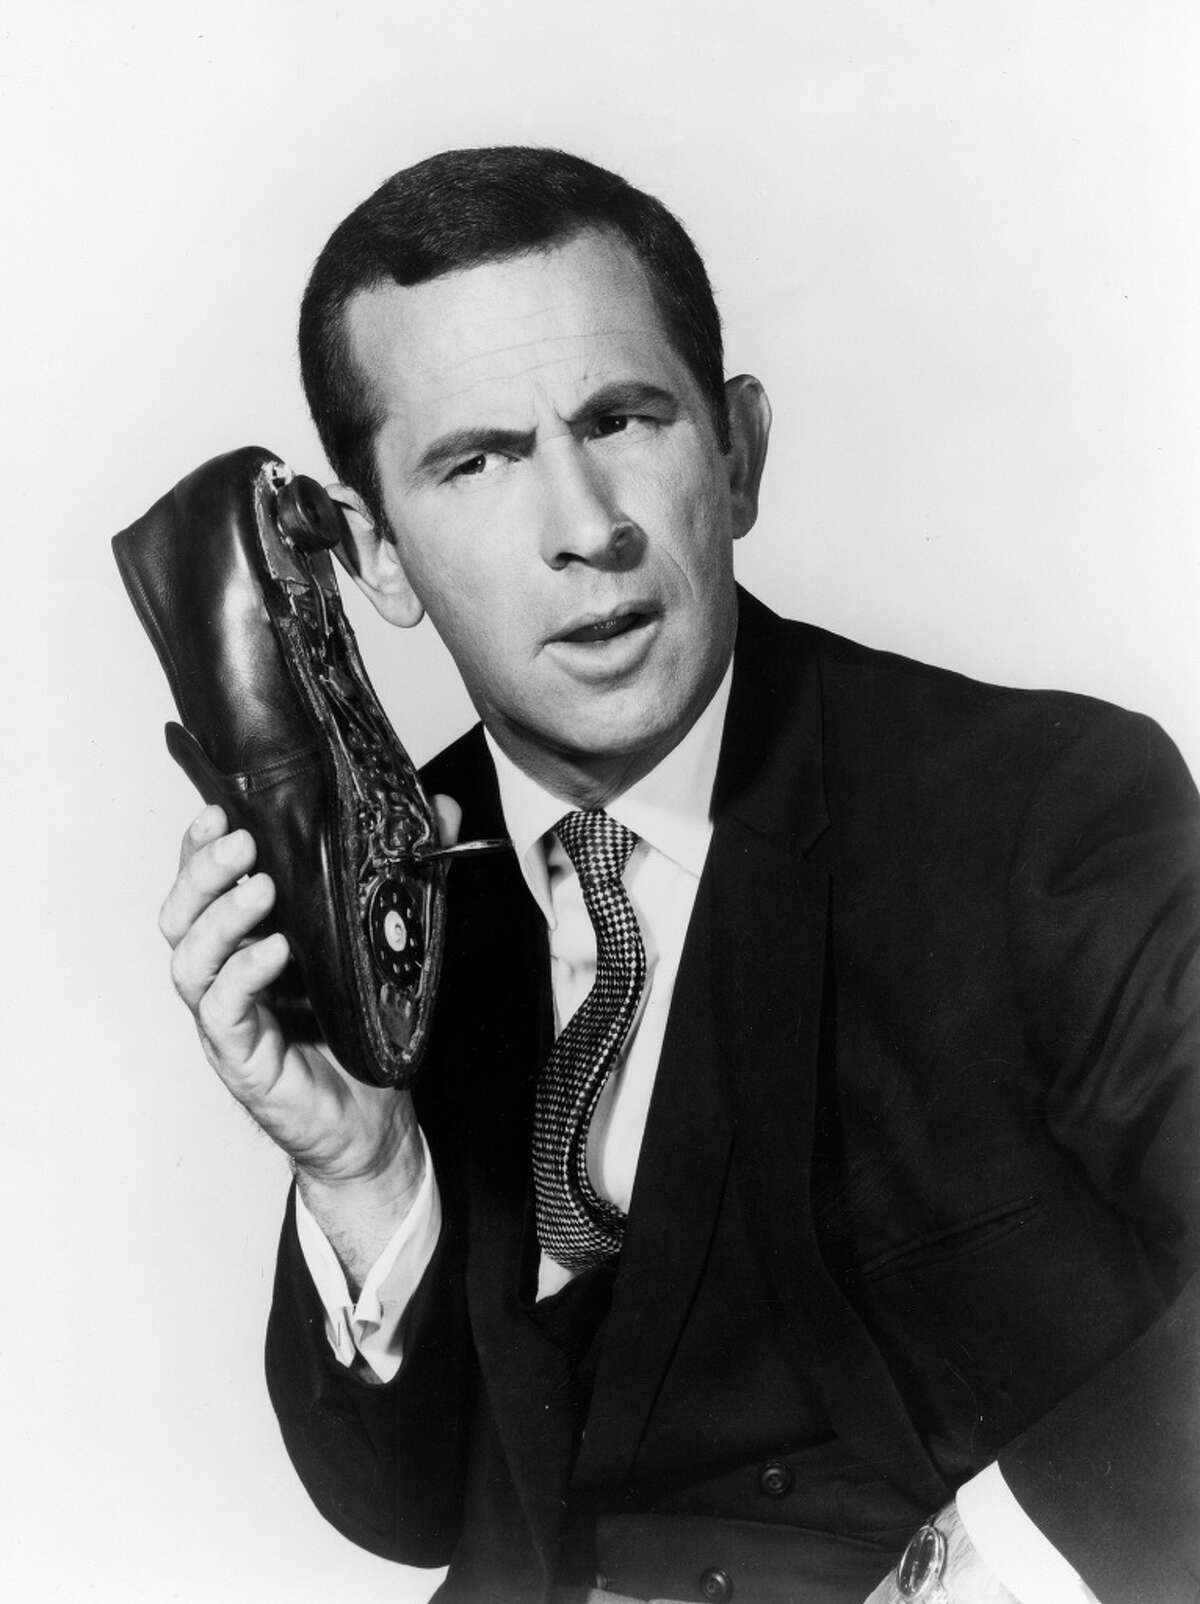 Don Adams' shoe phone from